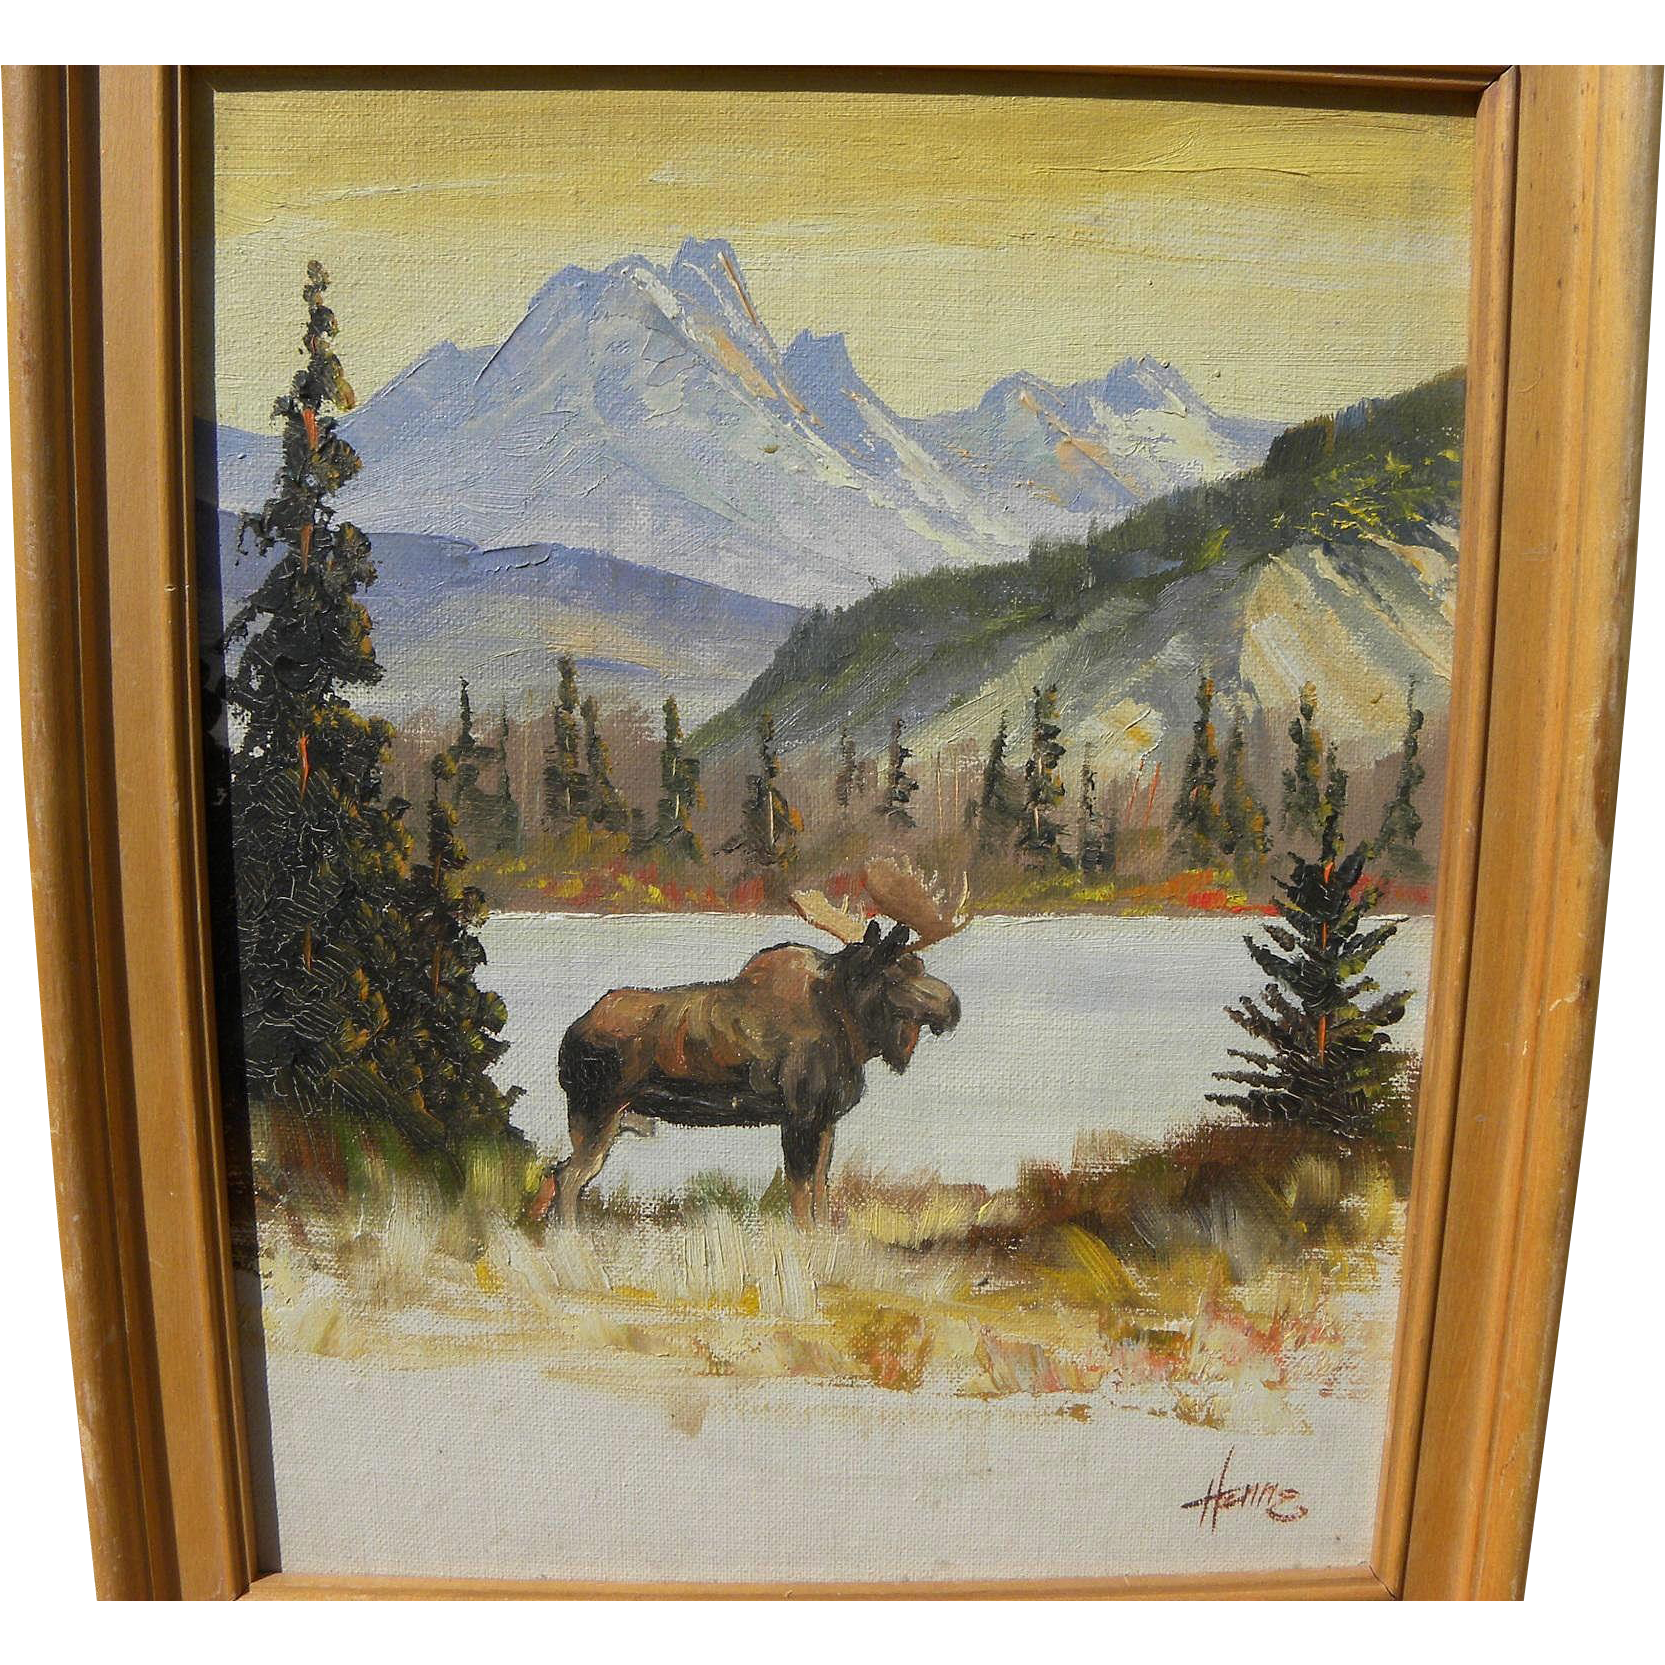 ELLEN HENNE GOODALE (1915-1991) Alaskan art landscape painting of moose in spectacular mountain setting by listed artist